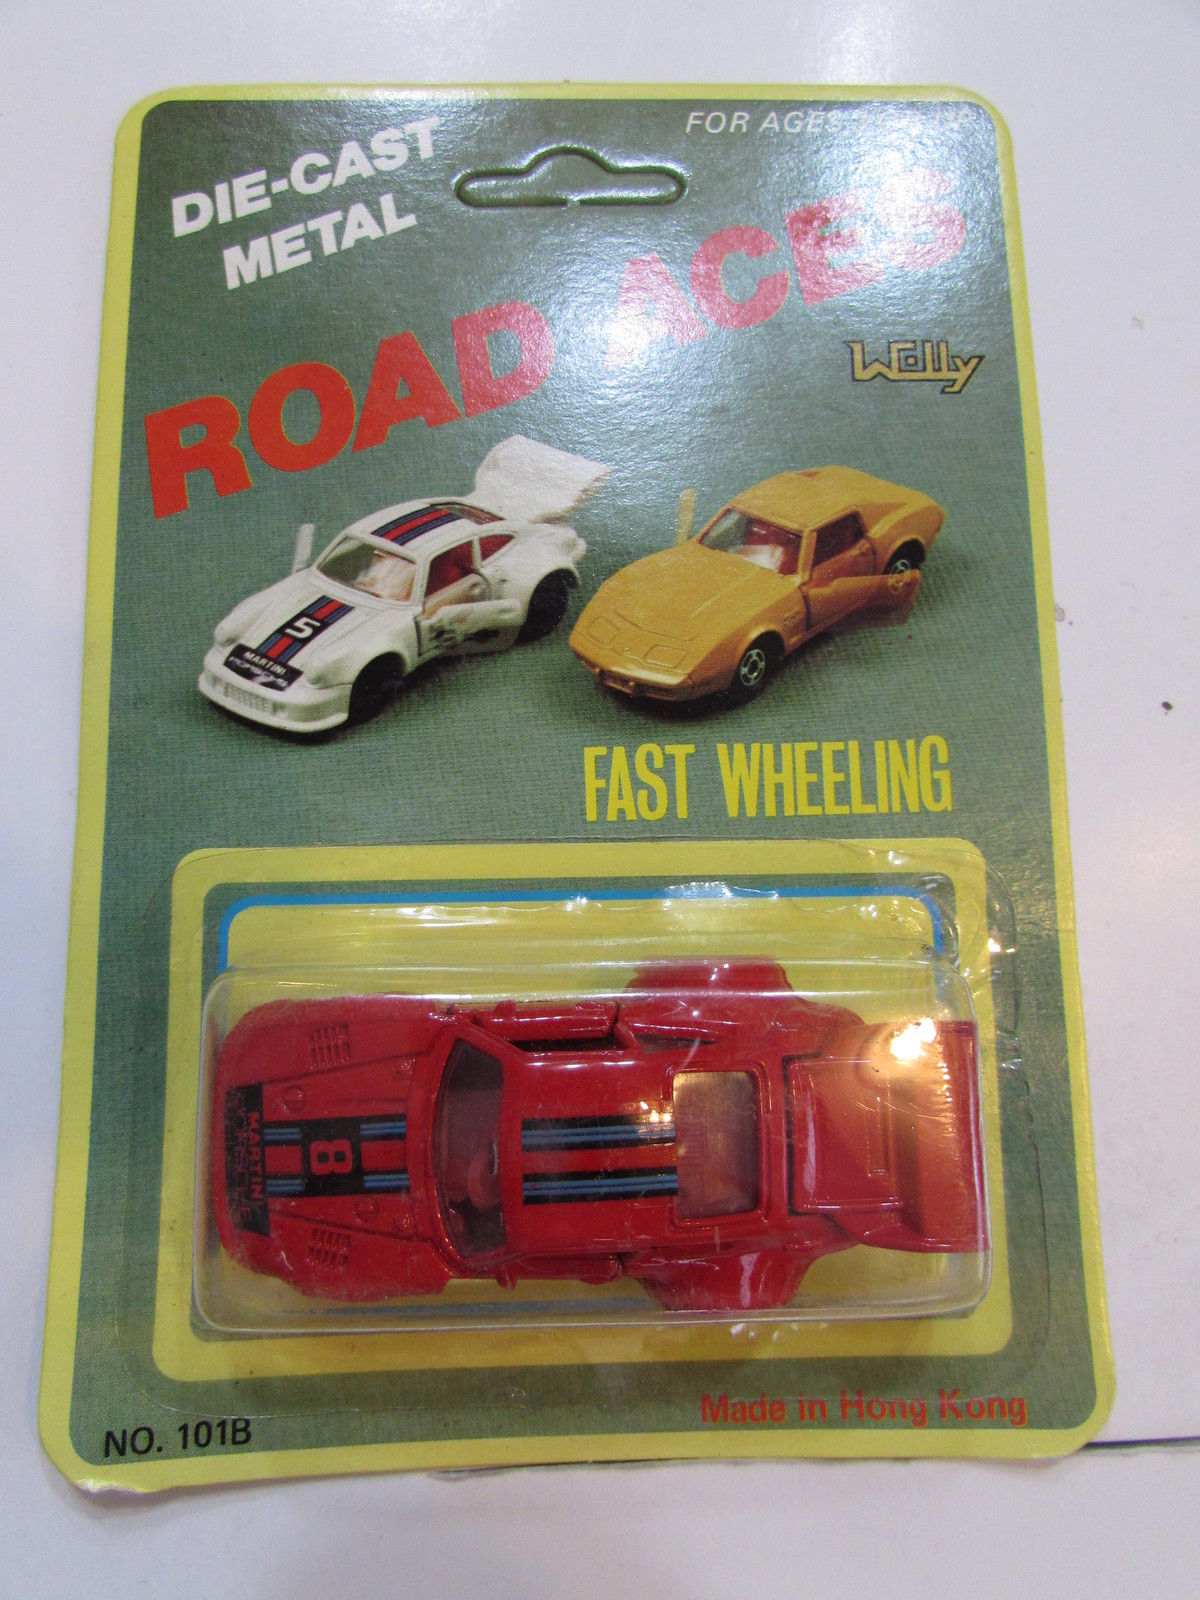 ROAD ACES FAST WHEELING - PORSCHE RED MADE IN HONG KONG